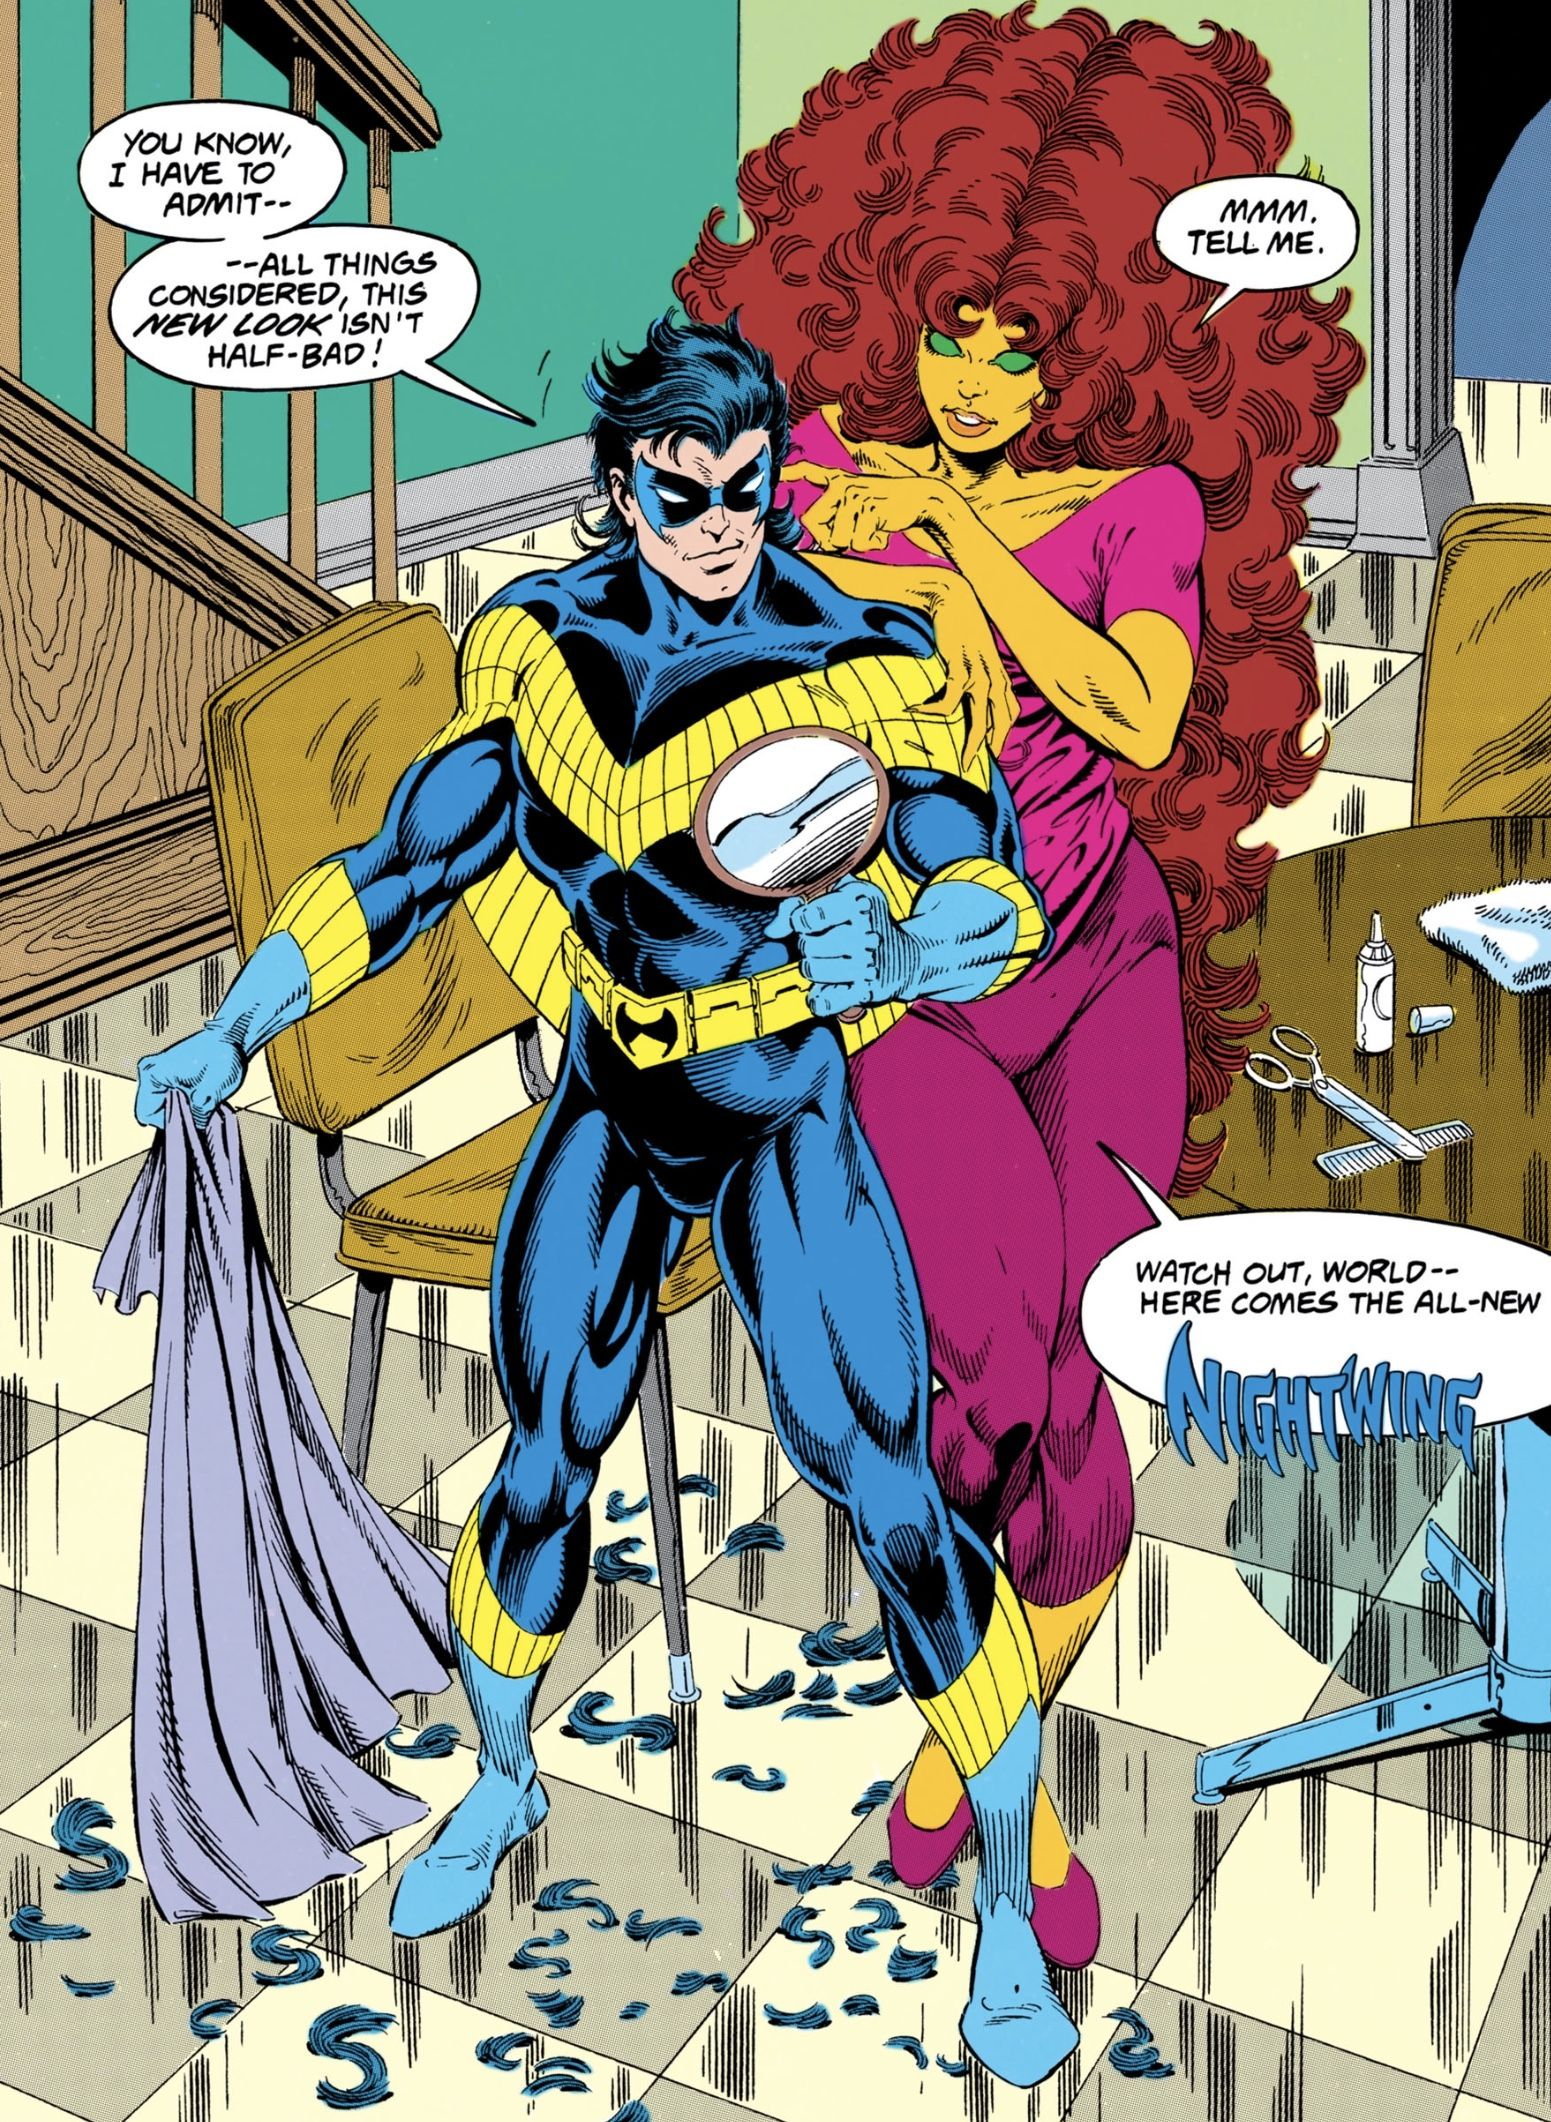 Pin by worldofcolin on Robin | Nightwing and starfire